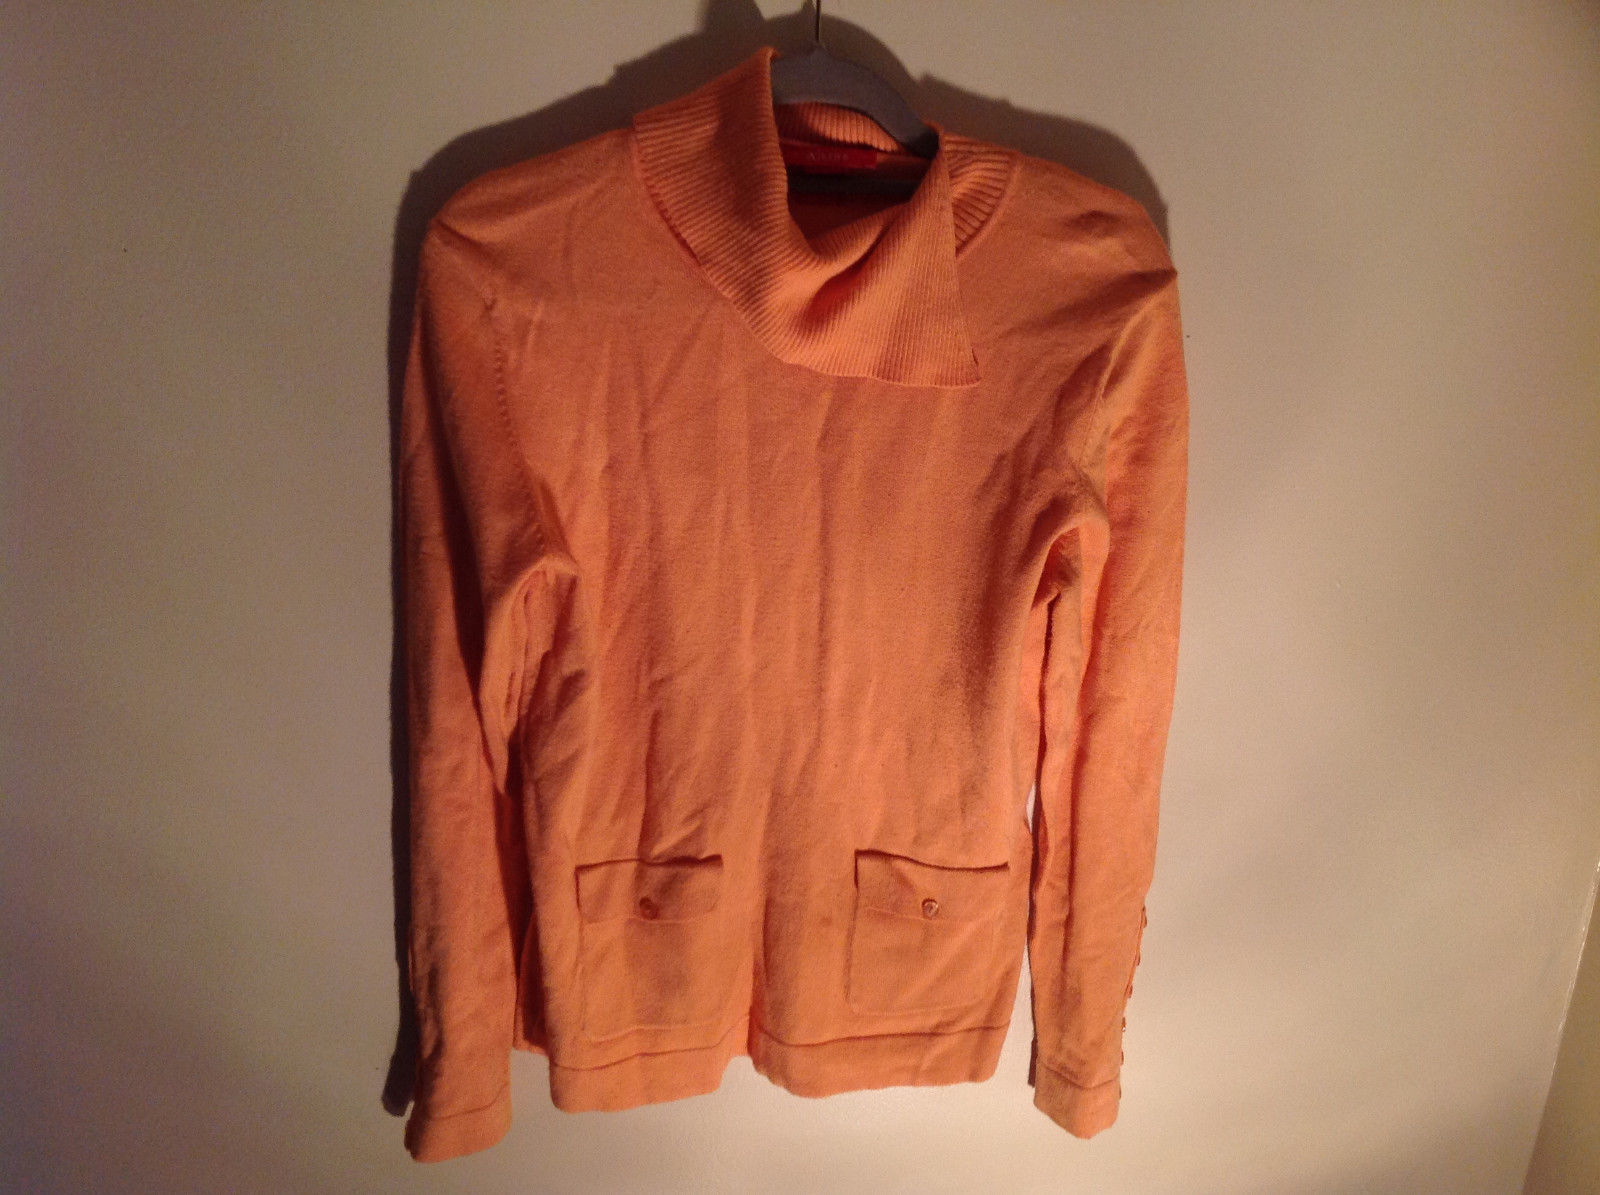 Long Sleeve Peachy Orange Color Sweater Turtleneck Collar from A Line Size Small